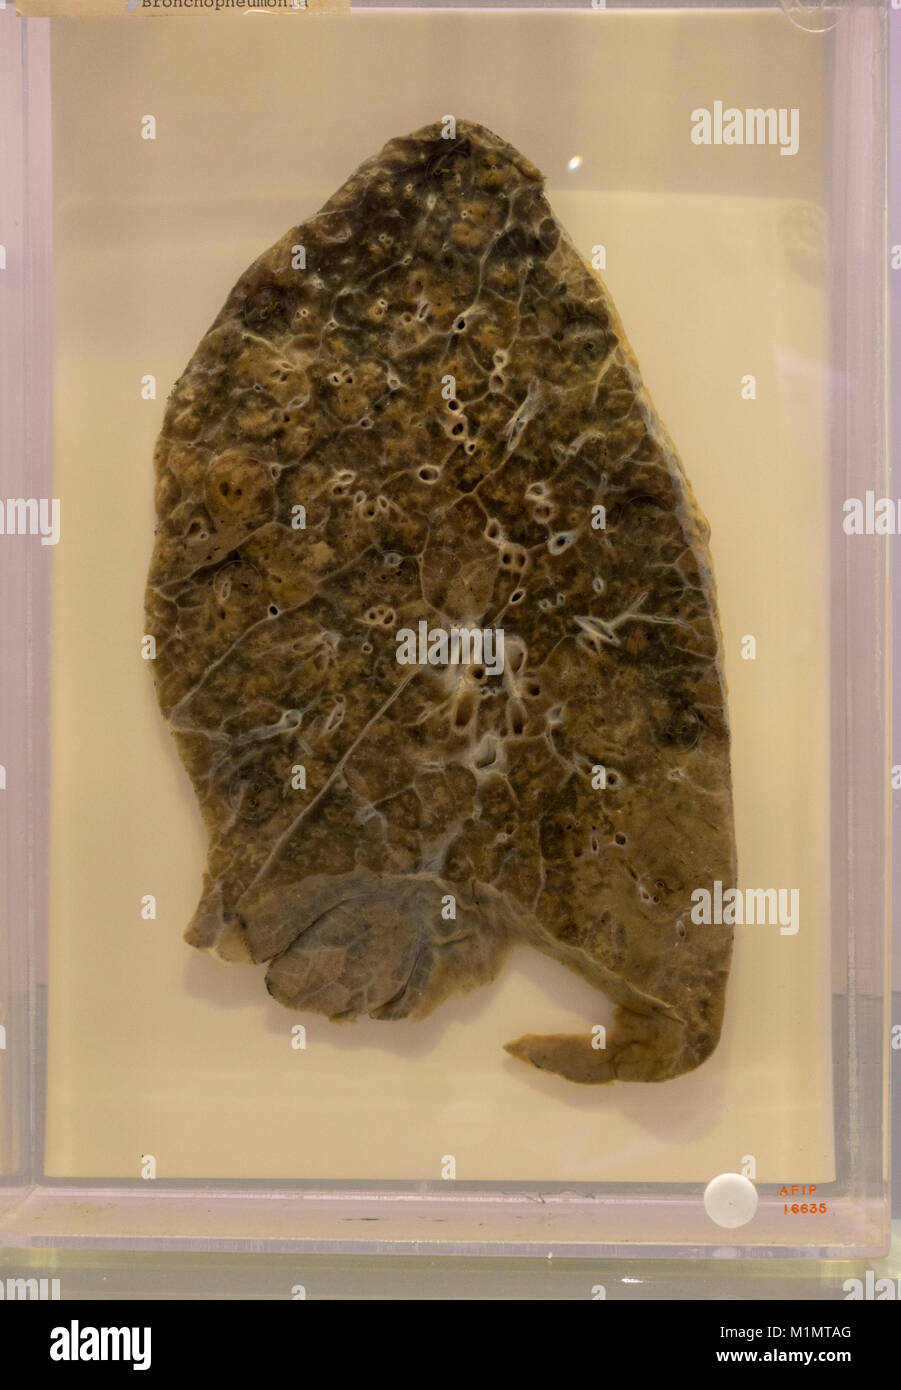 A human lung suffering from bronchopneumonia from the 1918 influenza outbreak, National Museum of Health and Medicine, - Stock Image